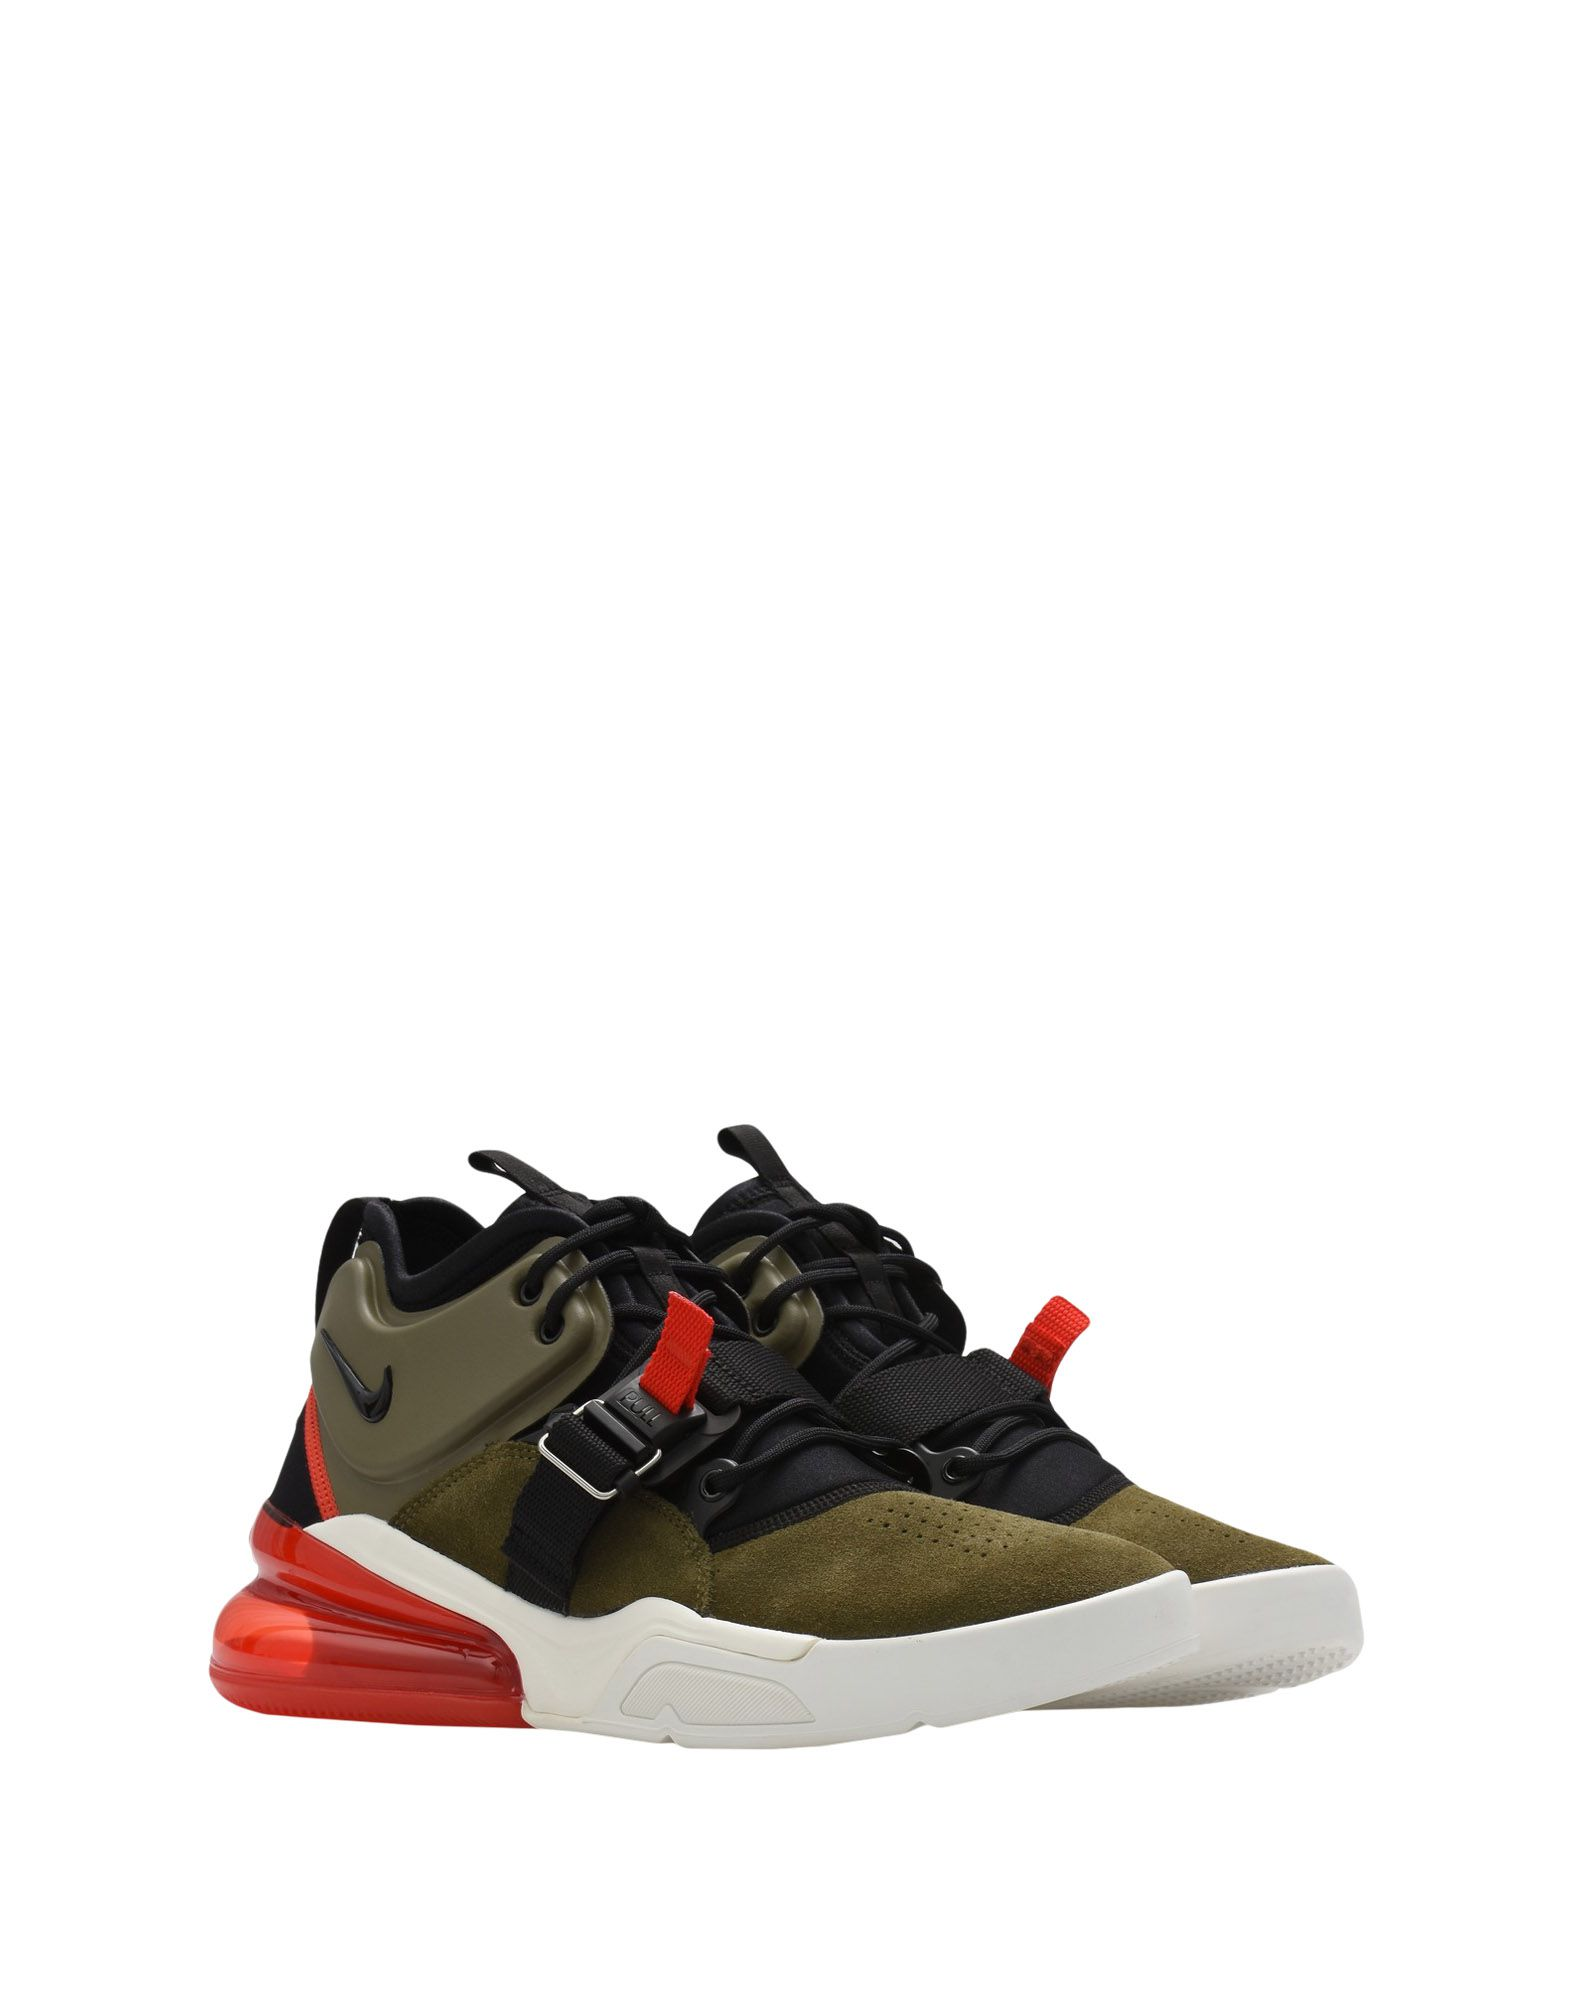 Sneakers Nike Nike Air Force 270 - Femme - Sneakers Nike sur